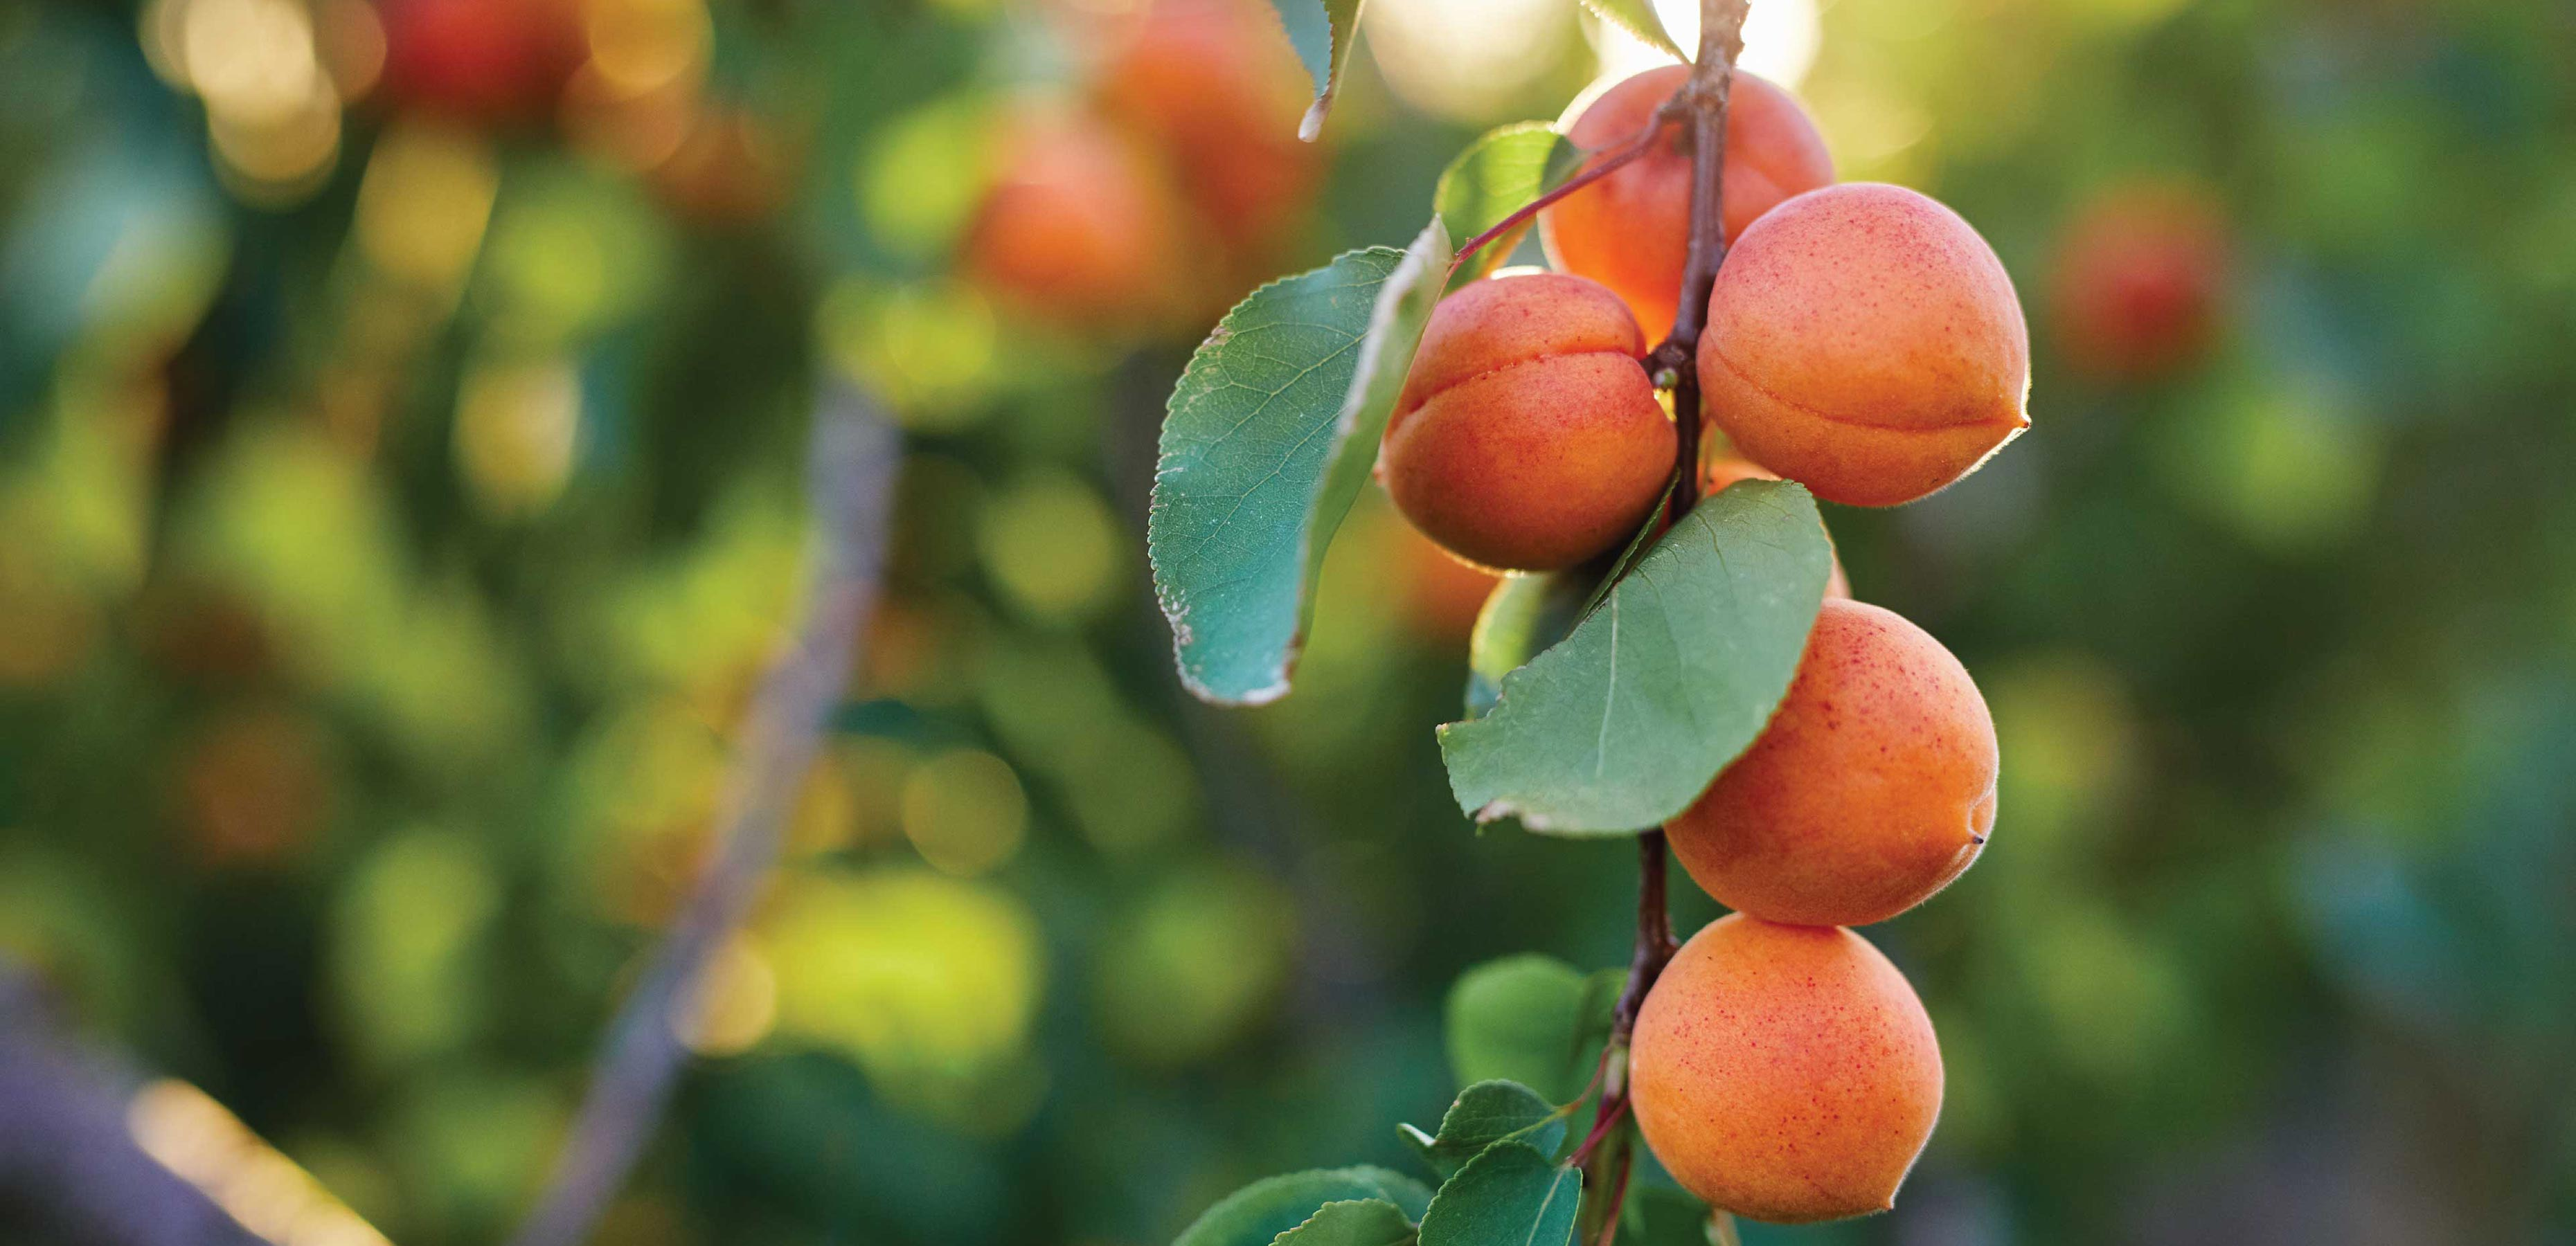 Hortgro Science Apricots Slide